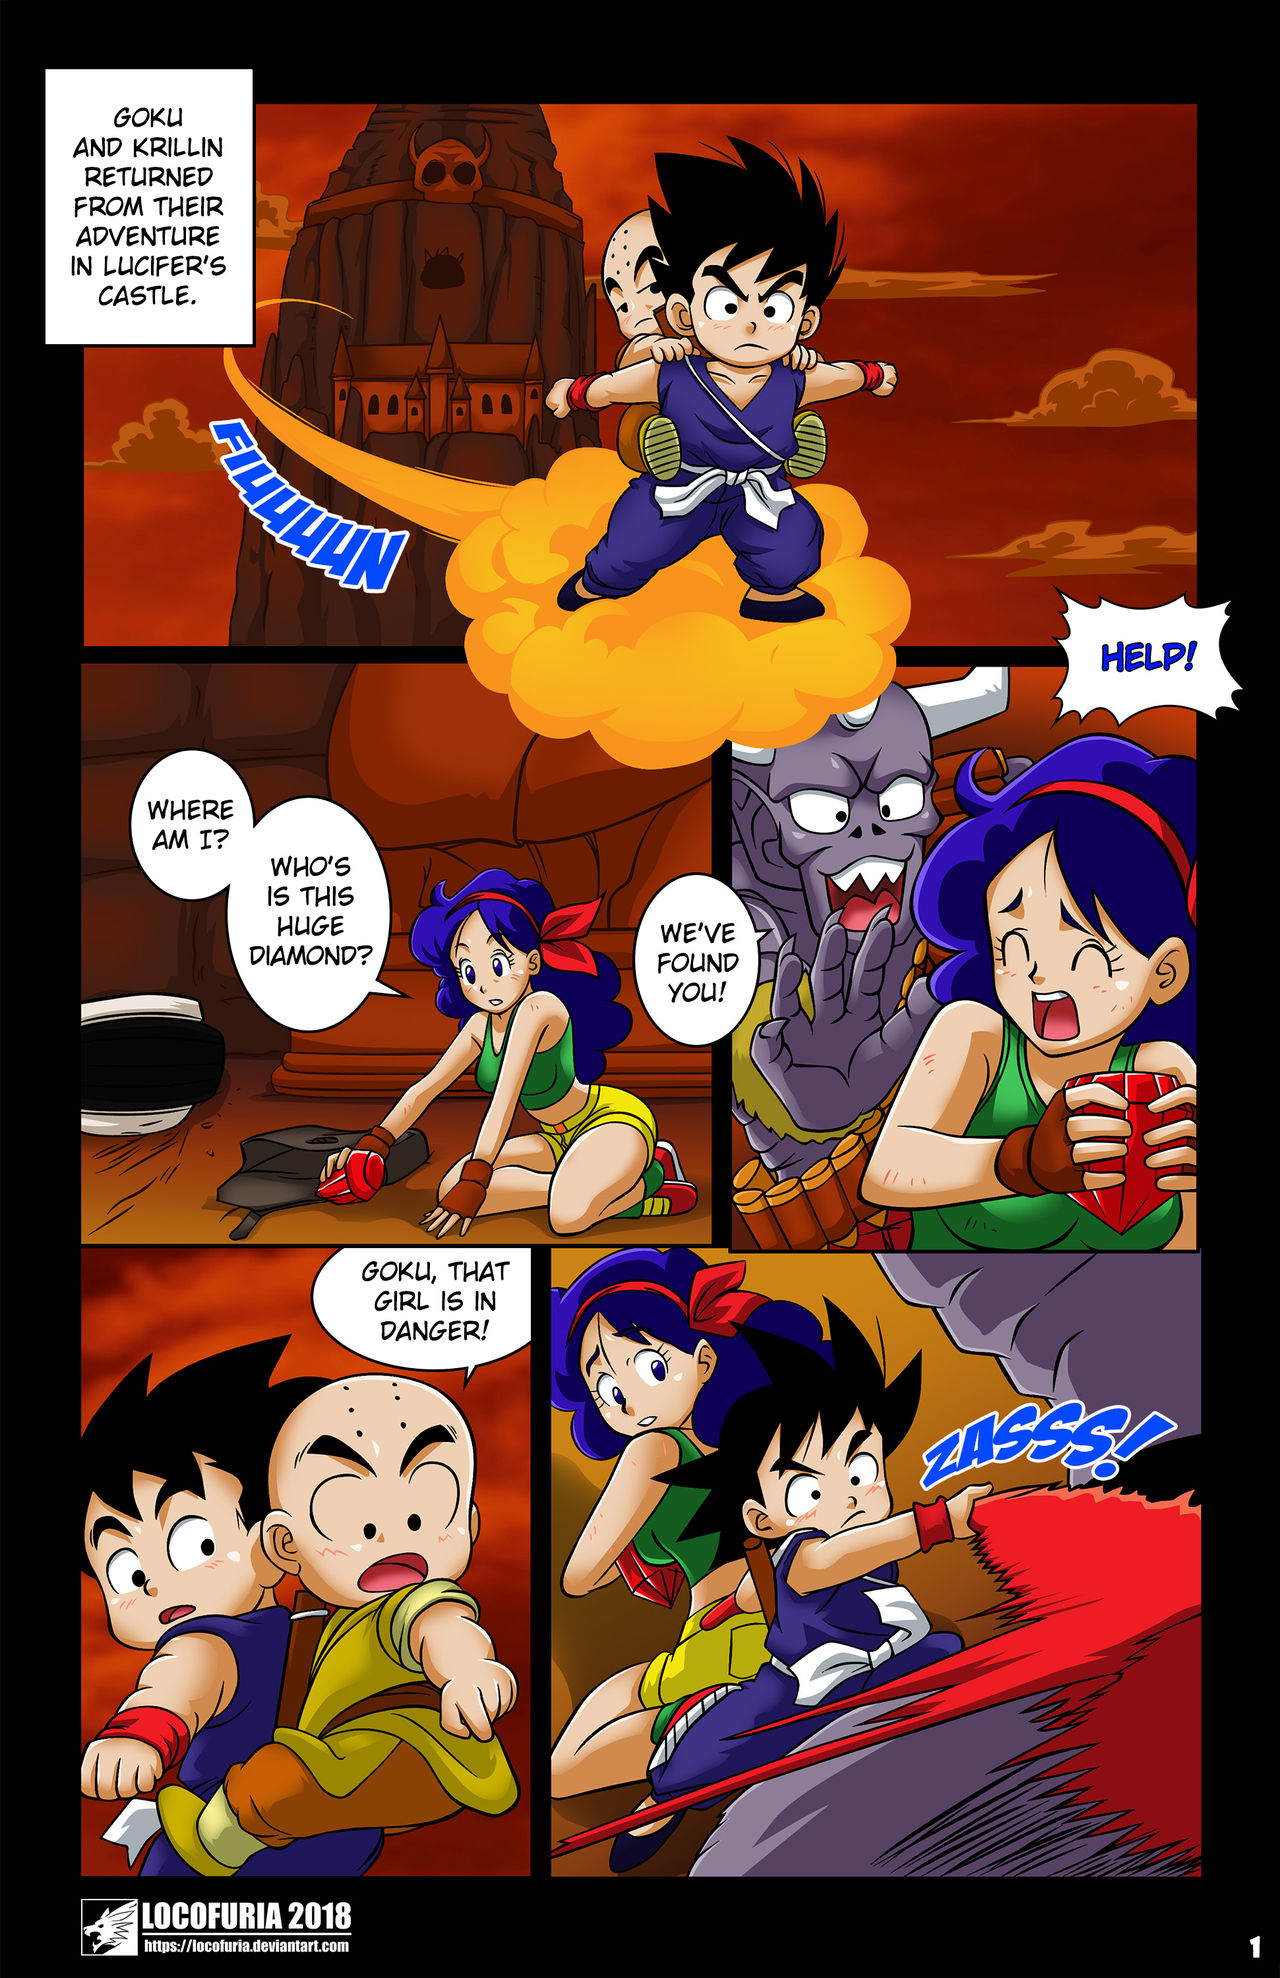 Evil Coronation #2 (Dragon Ball) by Dante Mondego